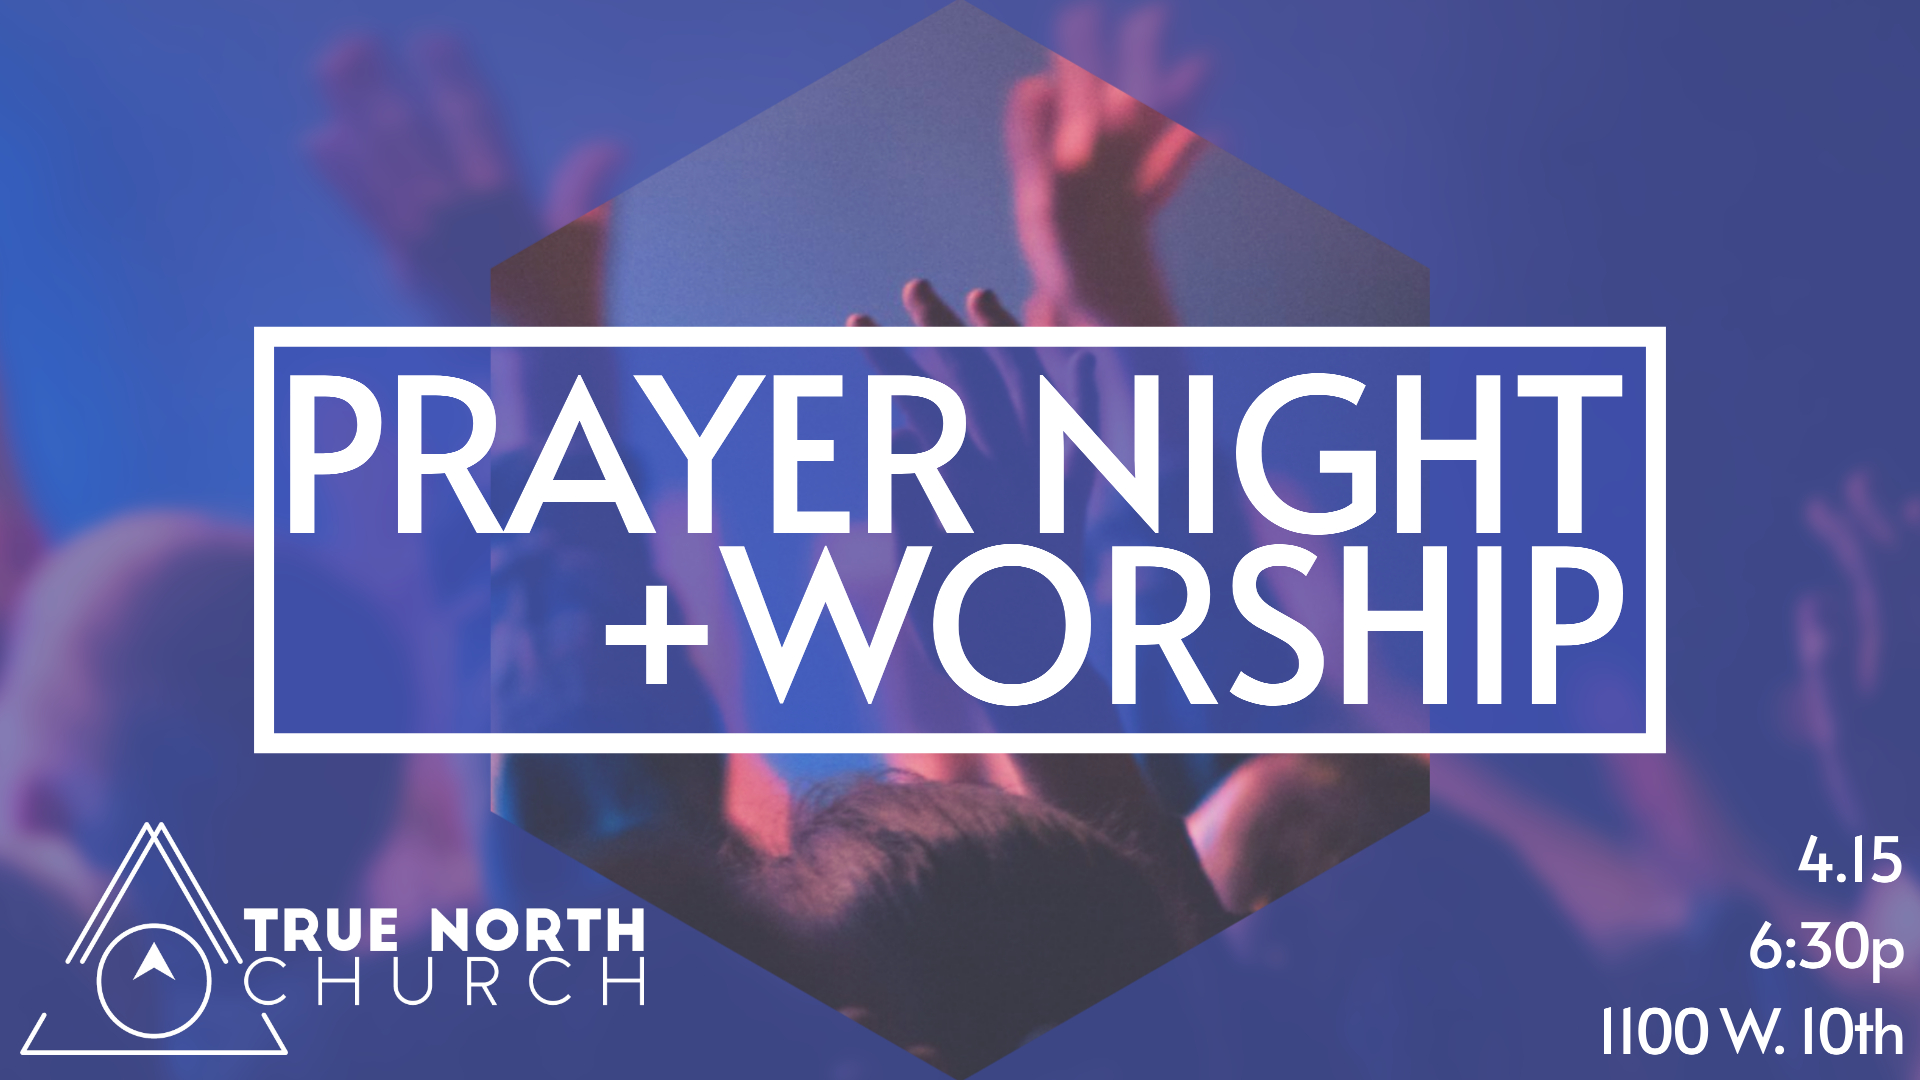 Prayer Night Announcement image